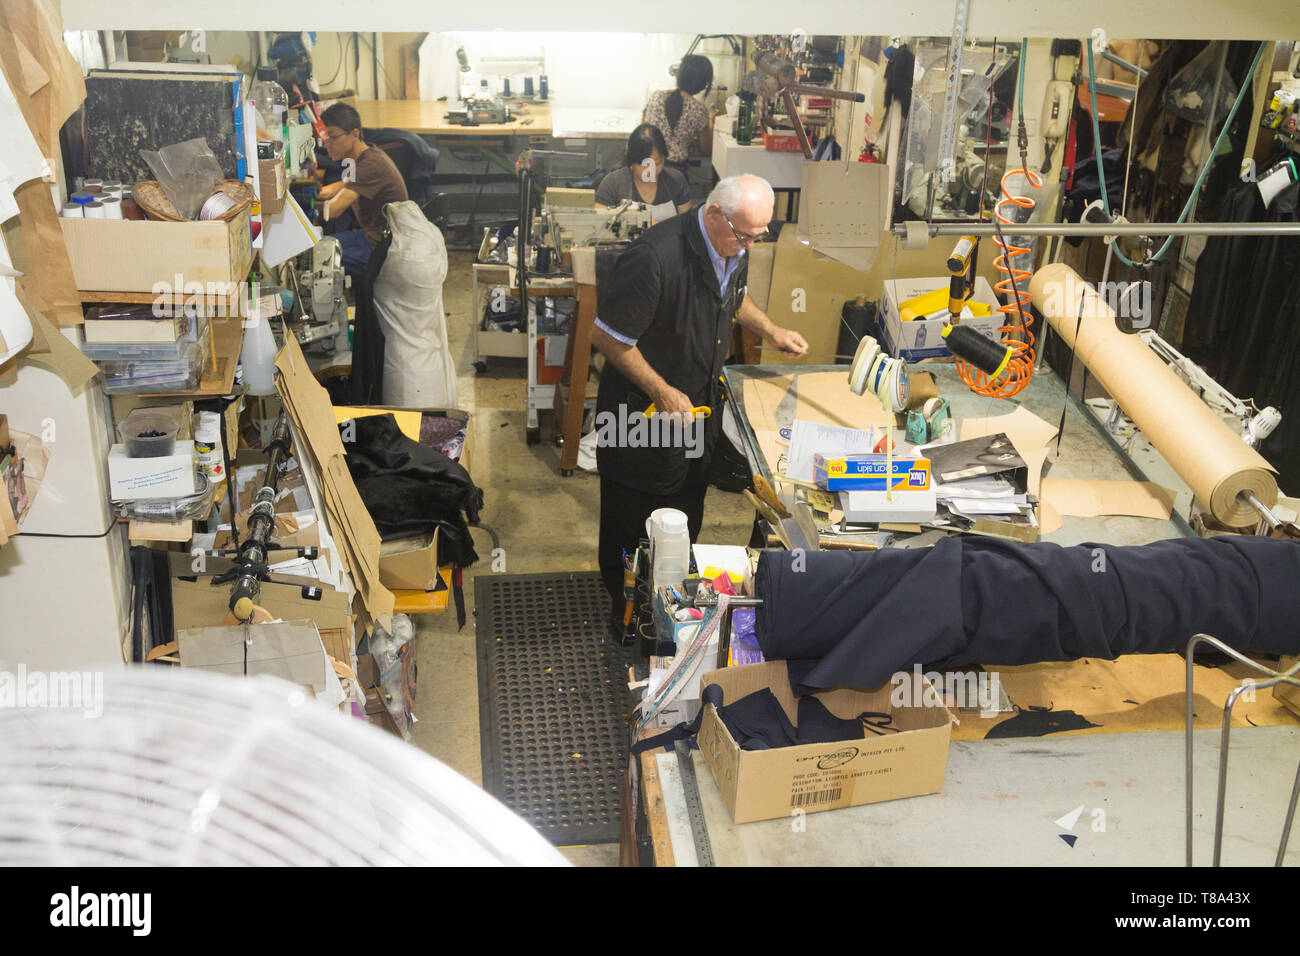 Perth, Western Australia, Australia - 17/01/2013 : People working in a clothing repair company with leather, Sinikka Custom Made Garments, Alteration - Stock Image